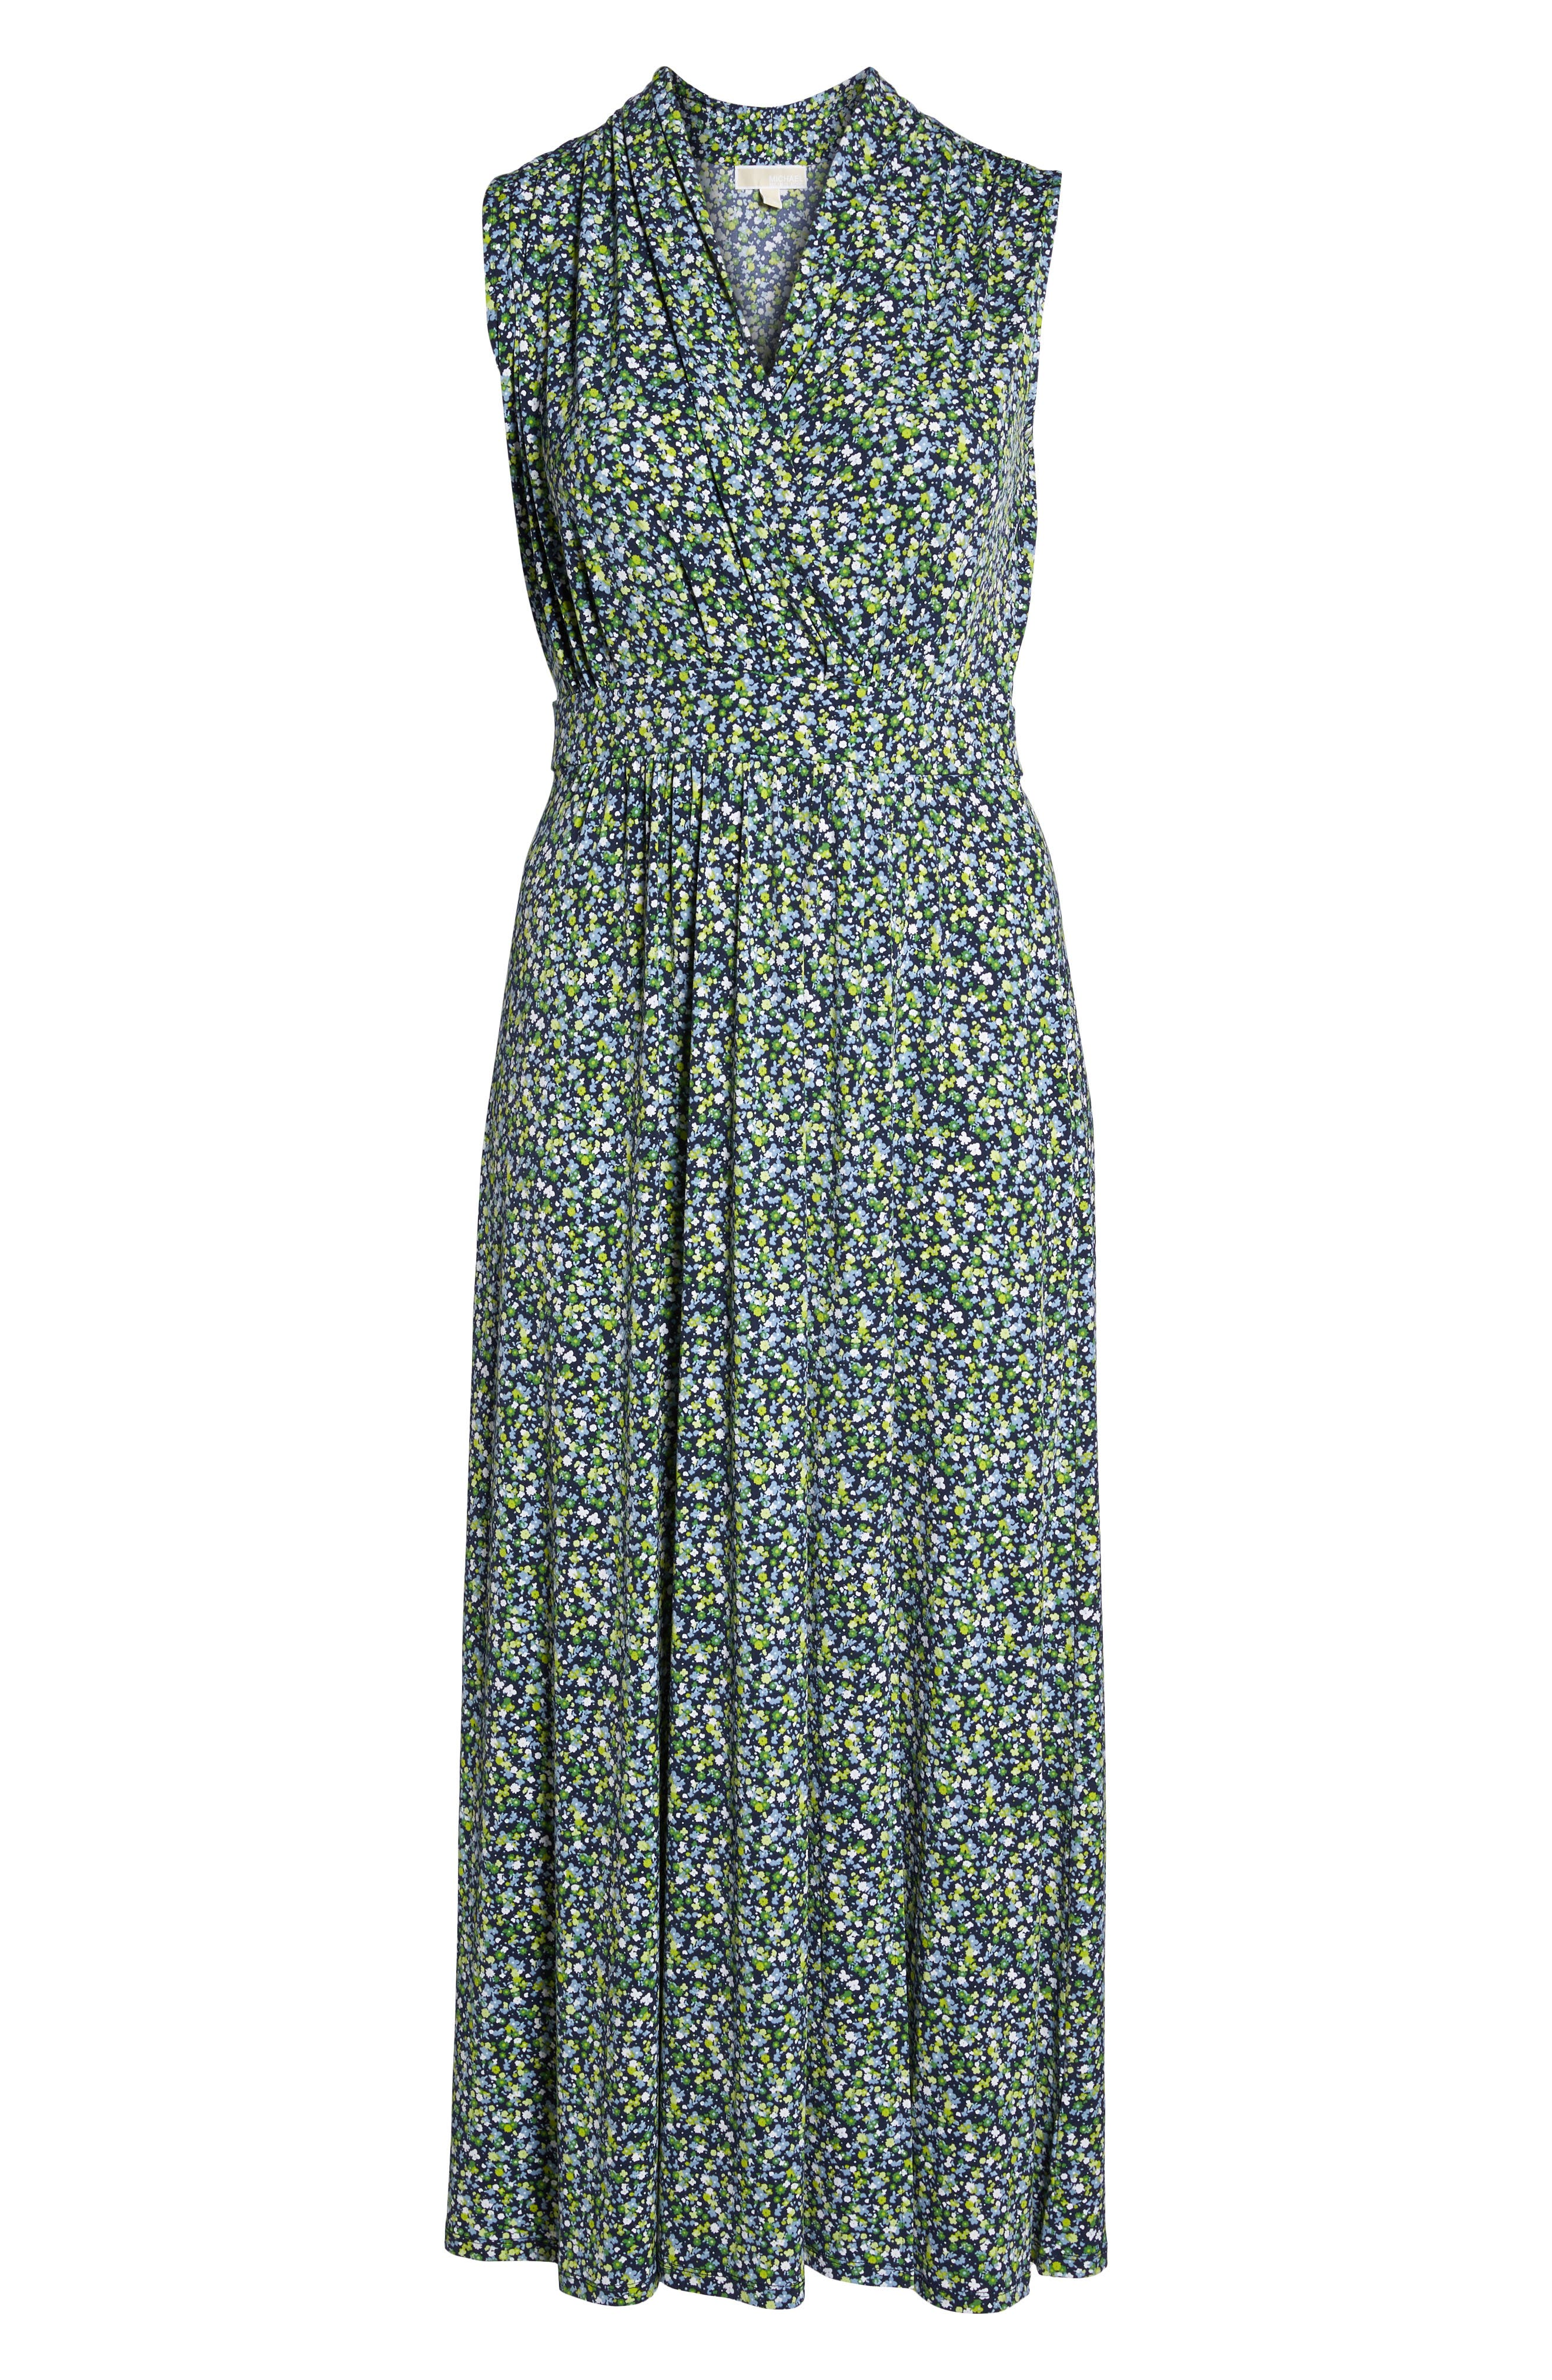 Wildflowers Maxi Dress,                             Alternate thumbnail 6, color,                             462